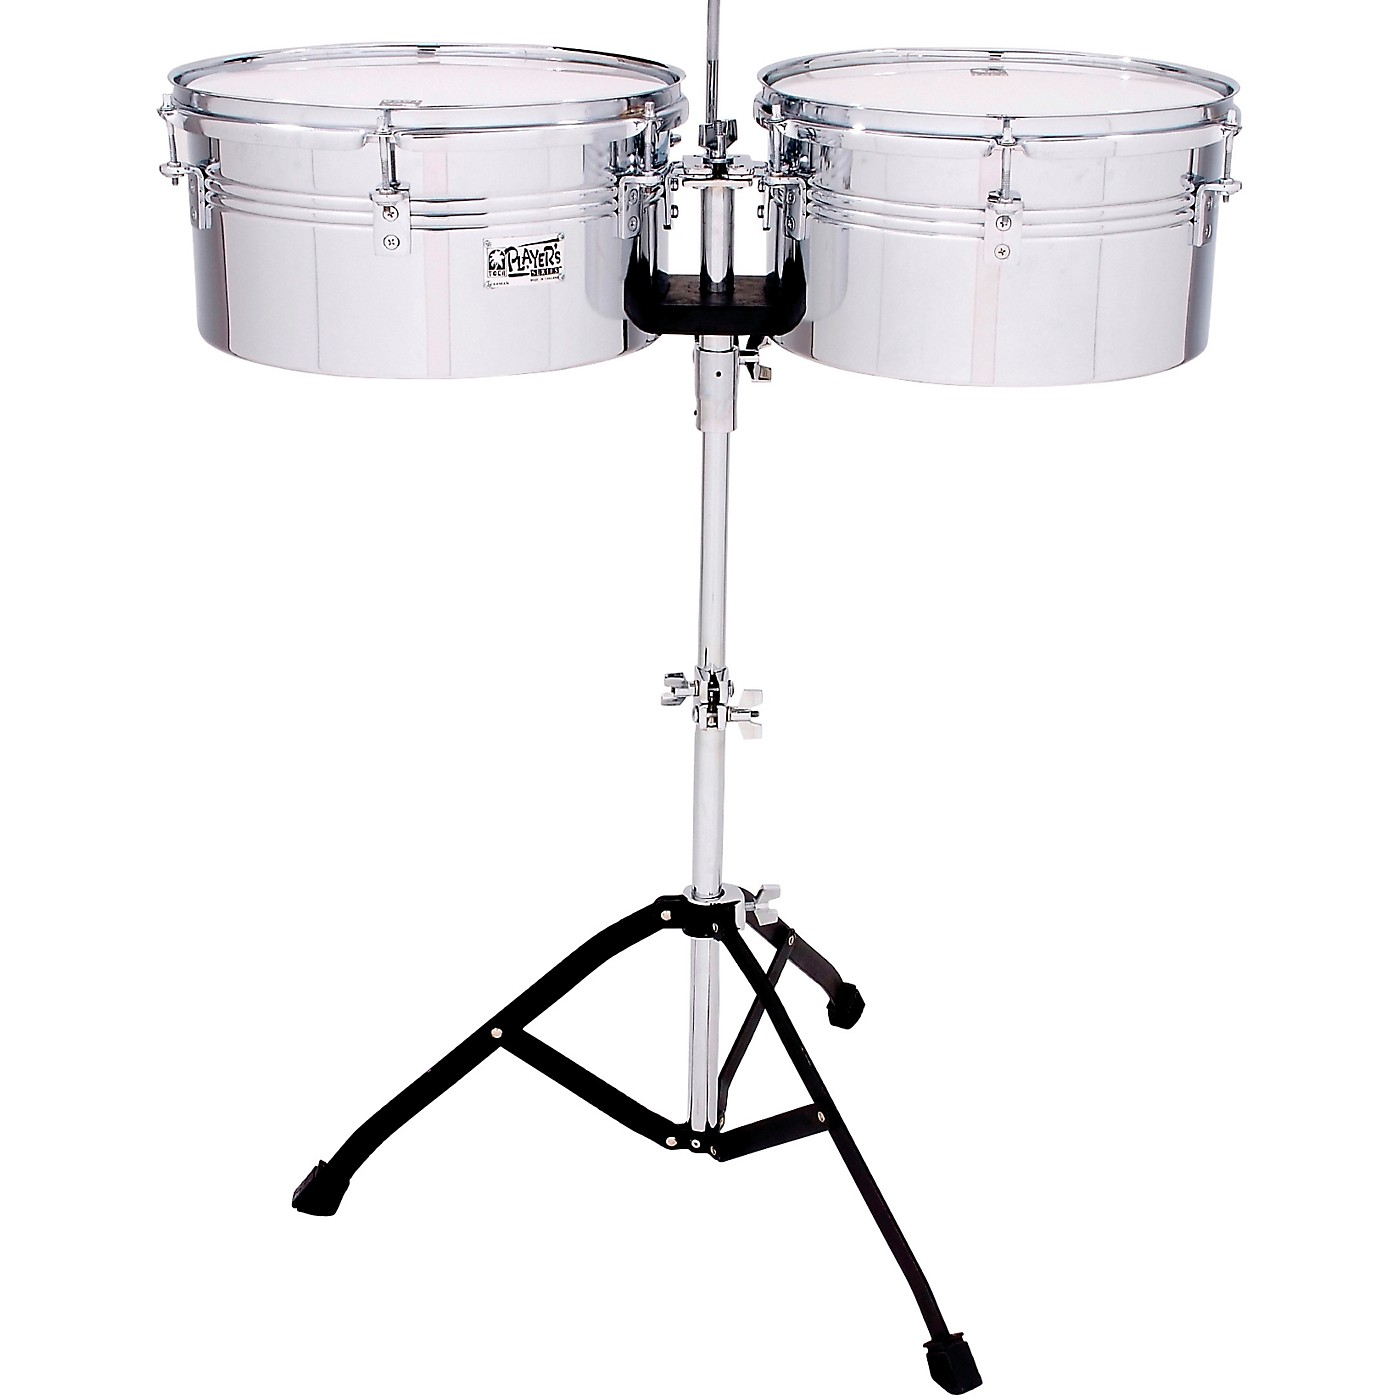 Toca Players Series Timbale Set with 13 and 14 in. steel drums and single braced stand thumbnail